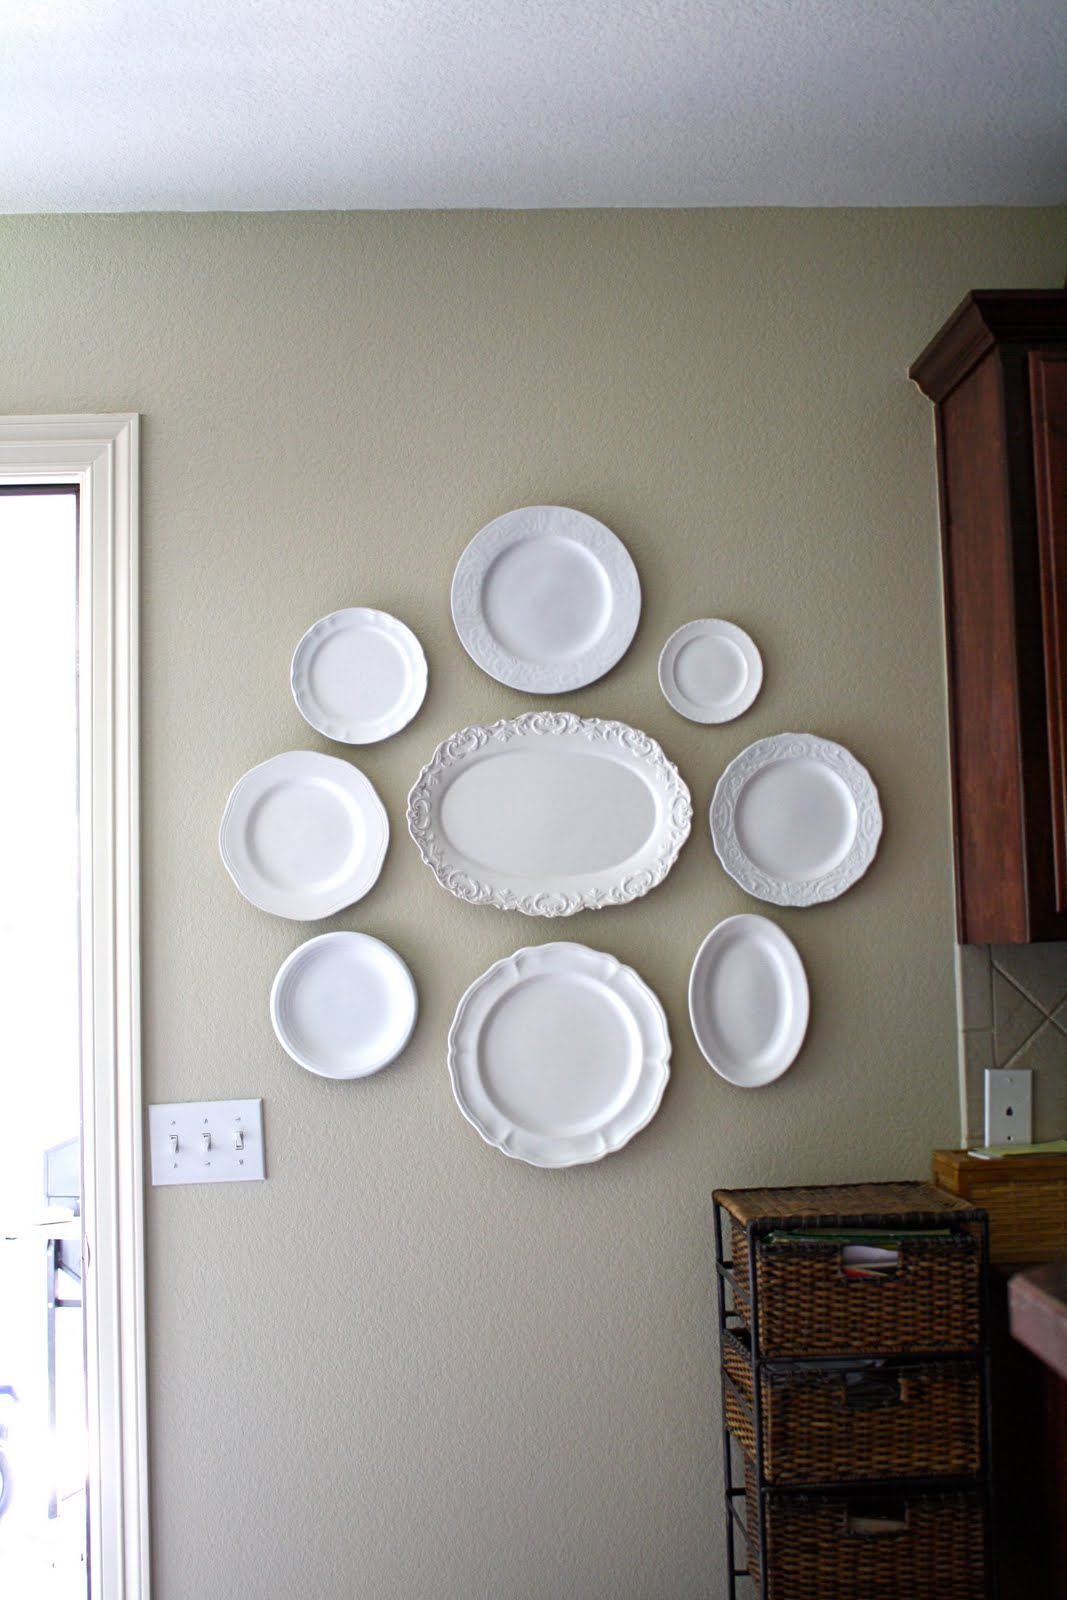 Plates Wall Decor 1000 Images About Hanging Plates On Pinterest House Tours